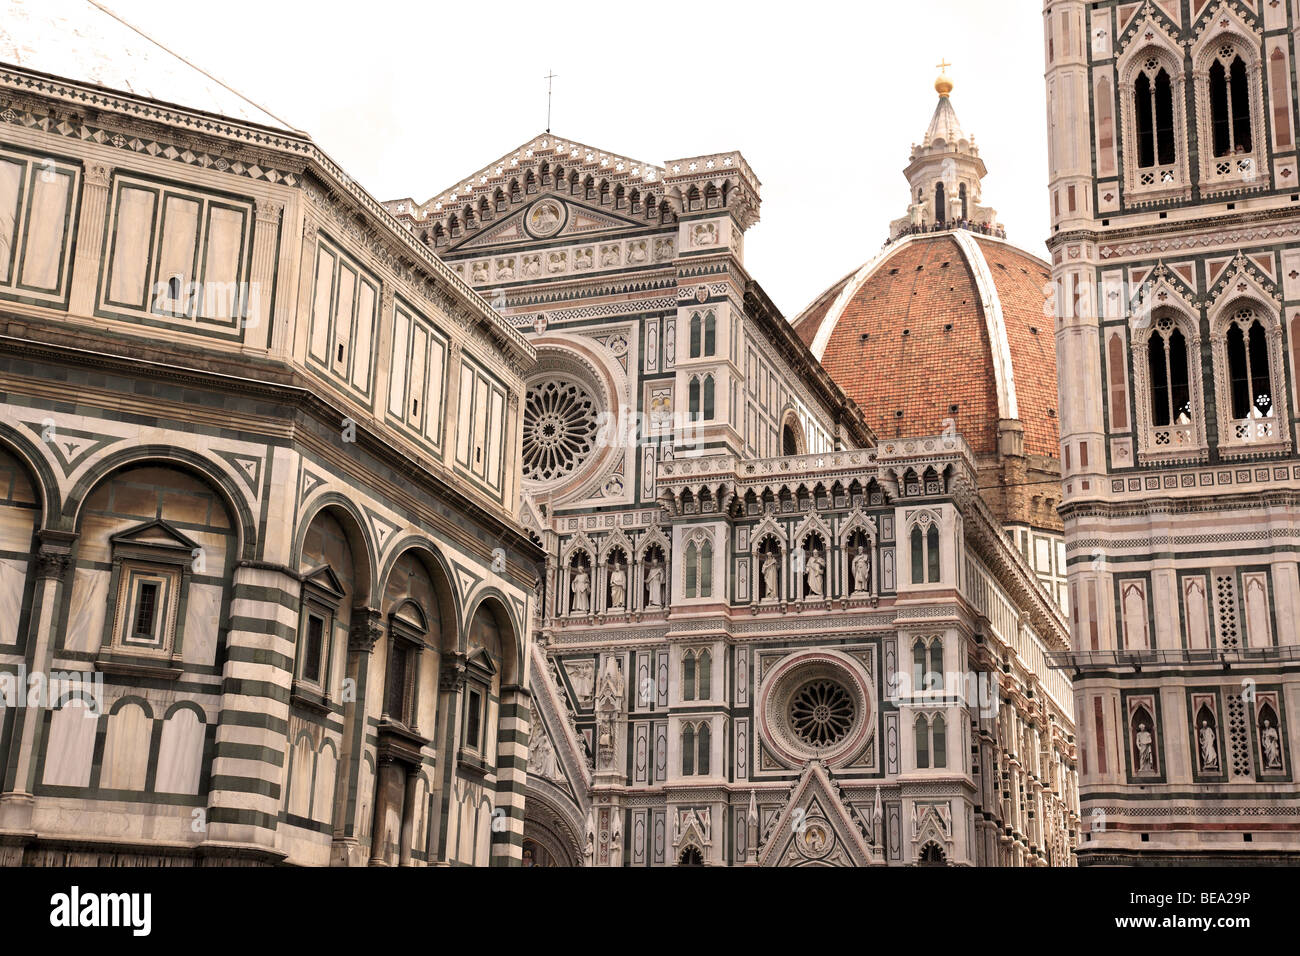 The Baptistry, Duomo and Campanile are the most famous landmarks in Florence Italy - Stock Image